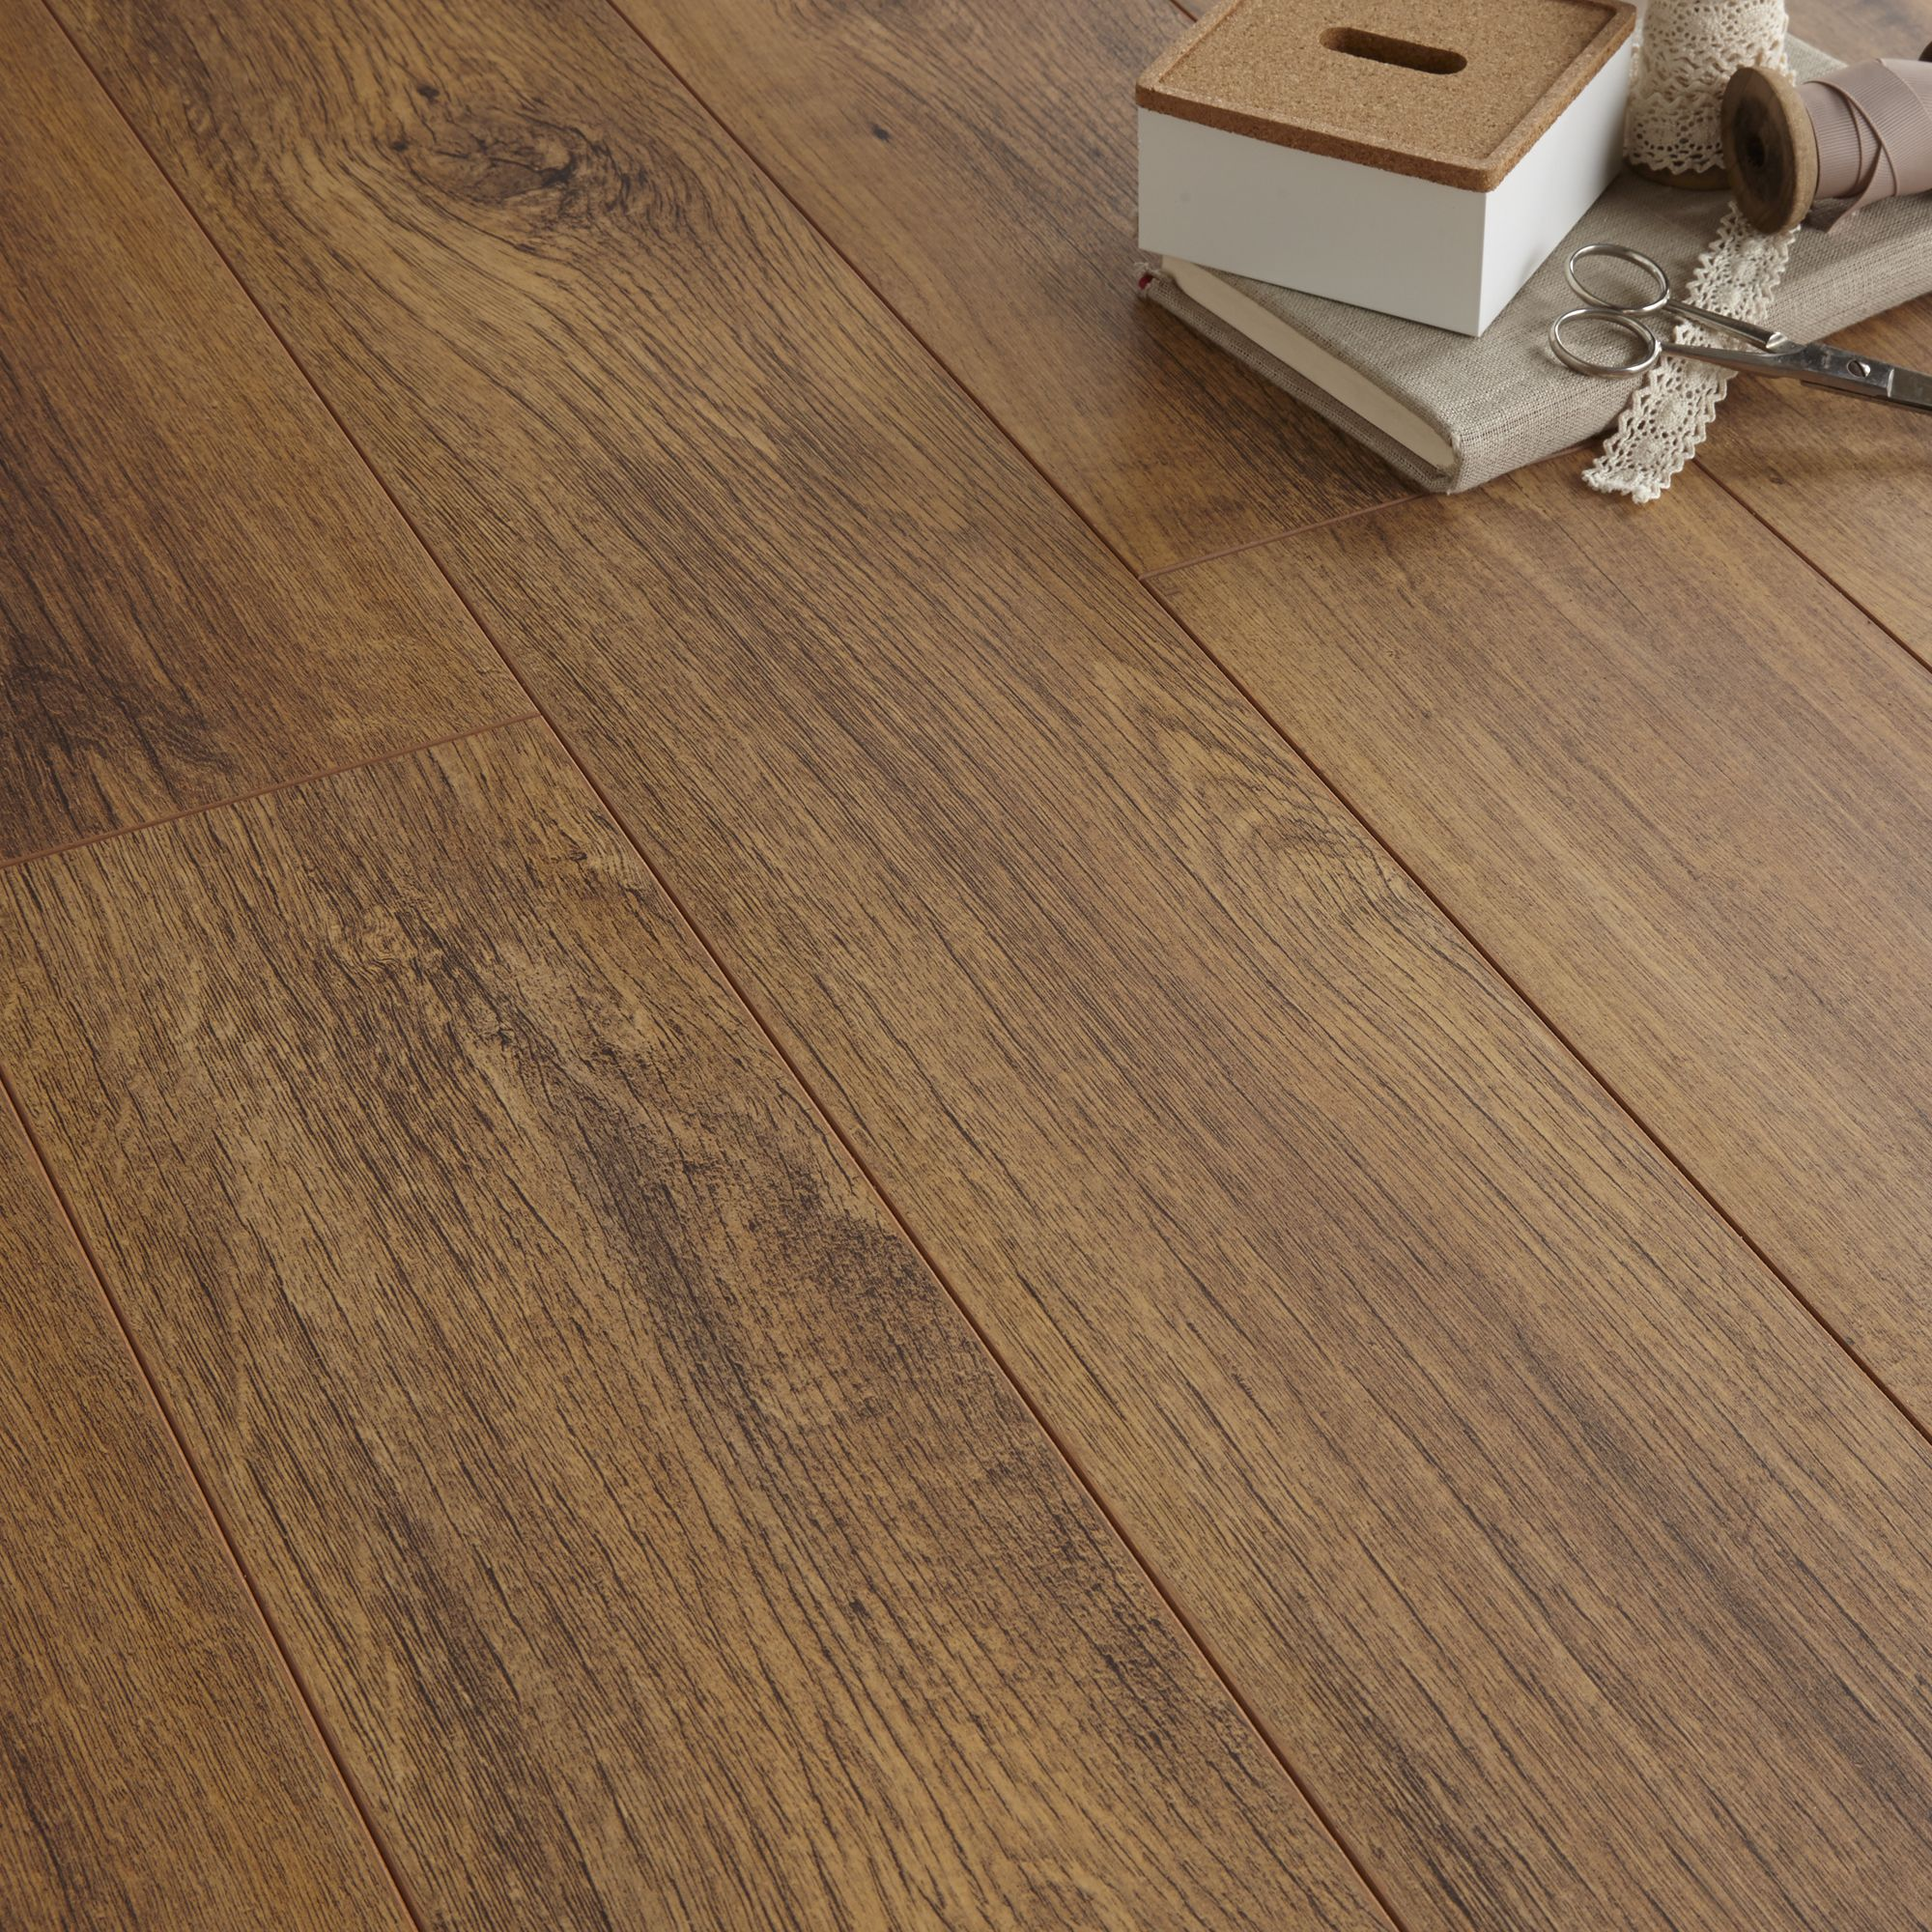 Arpeggio Natural Tuscany Olive Effect 2 Strip Laminate